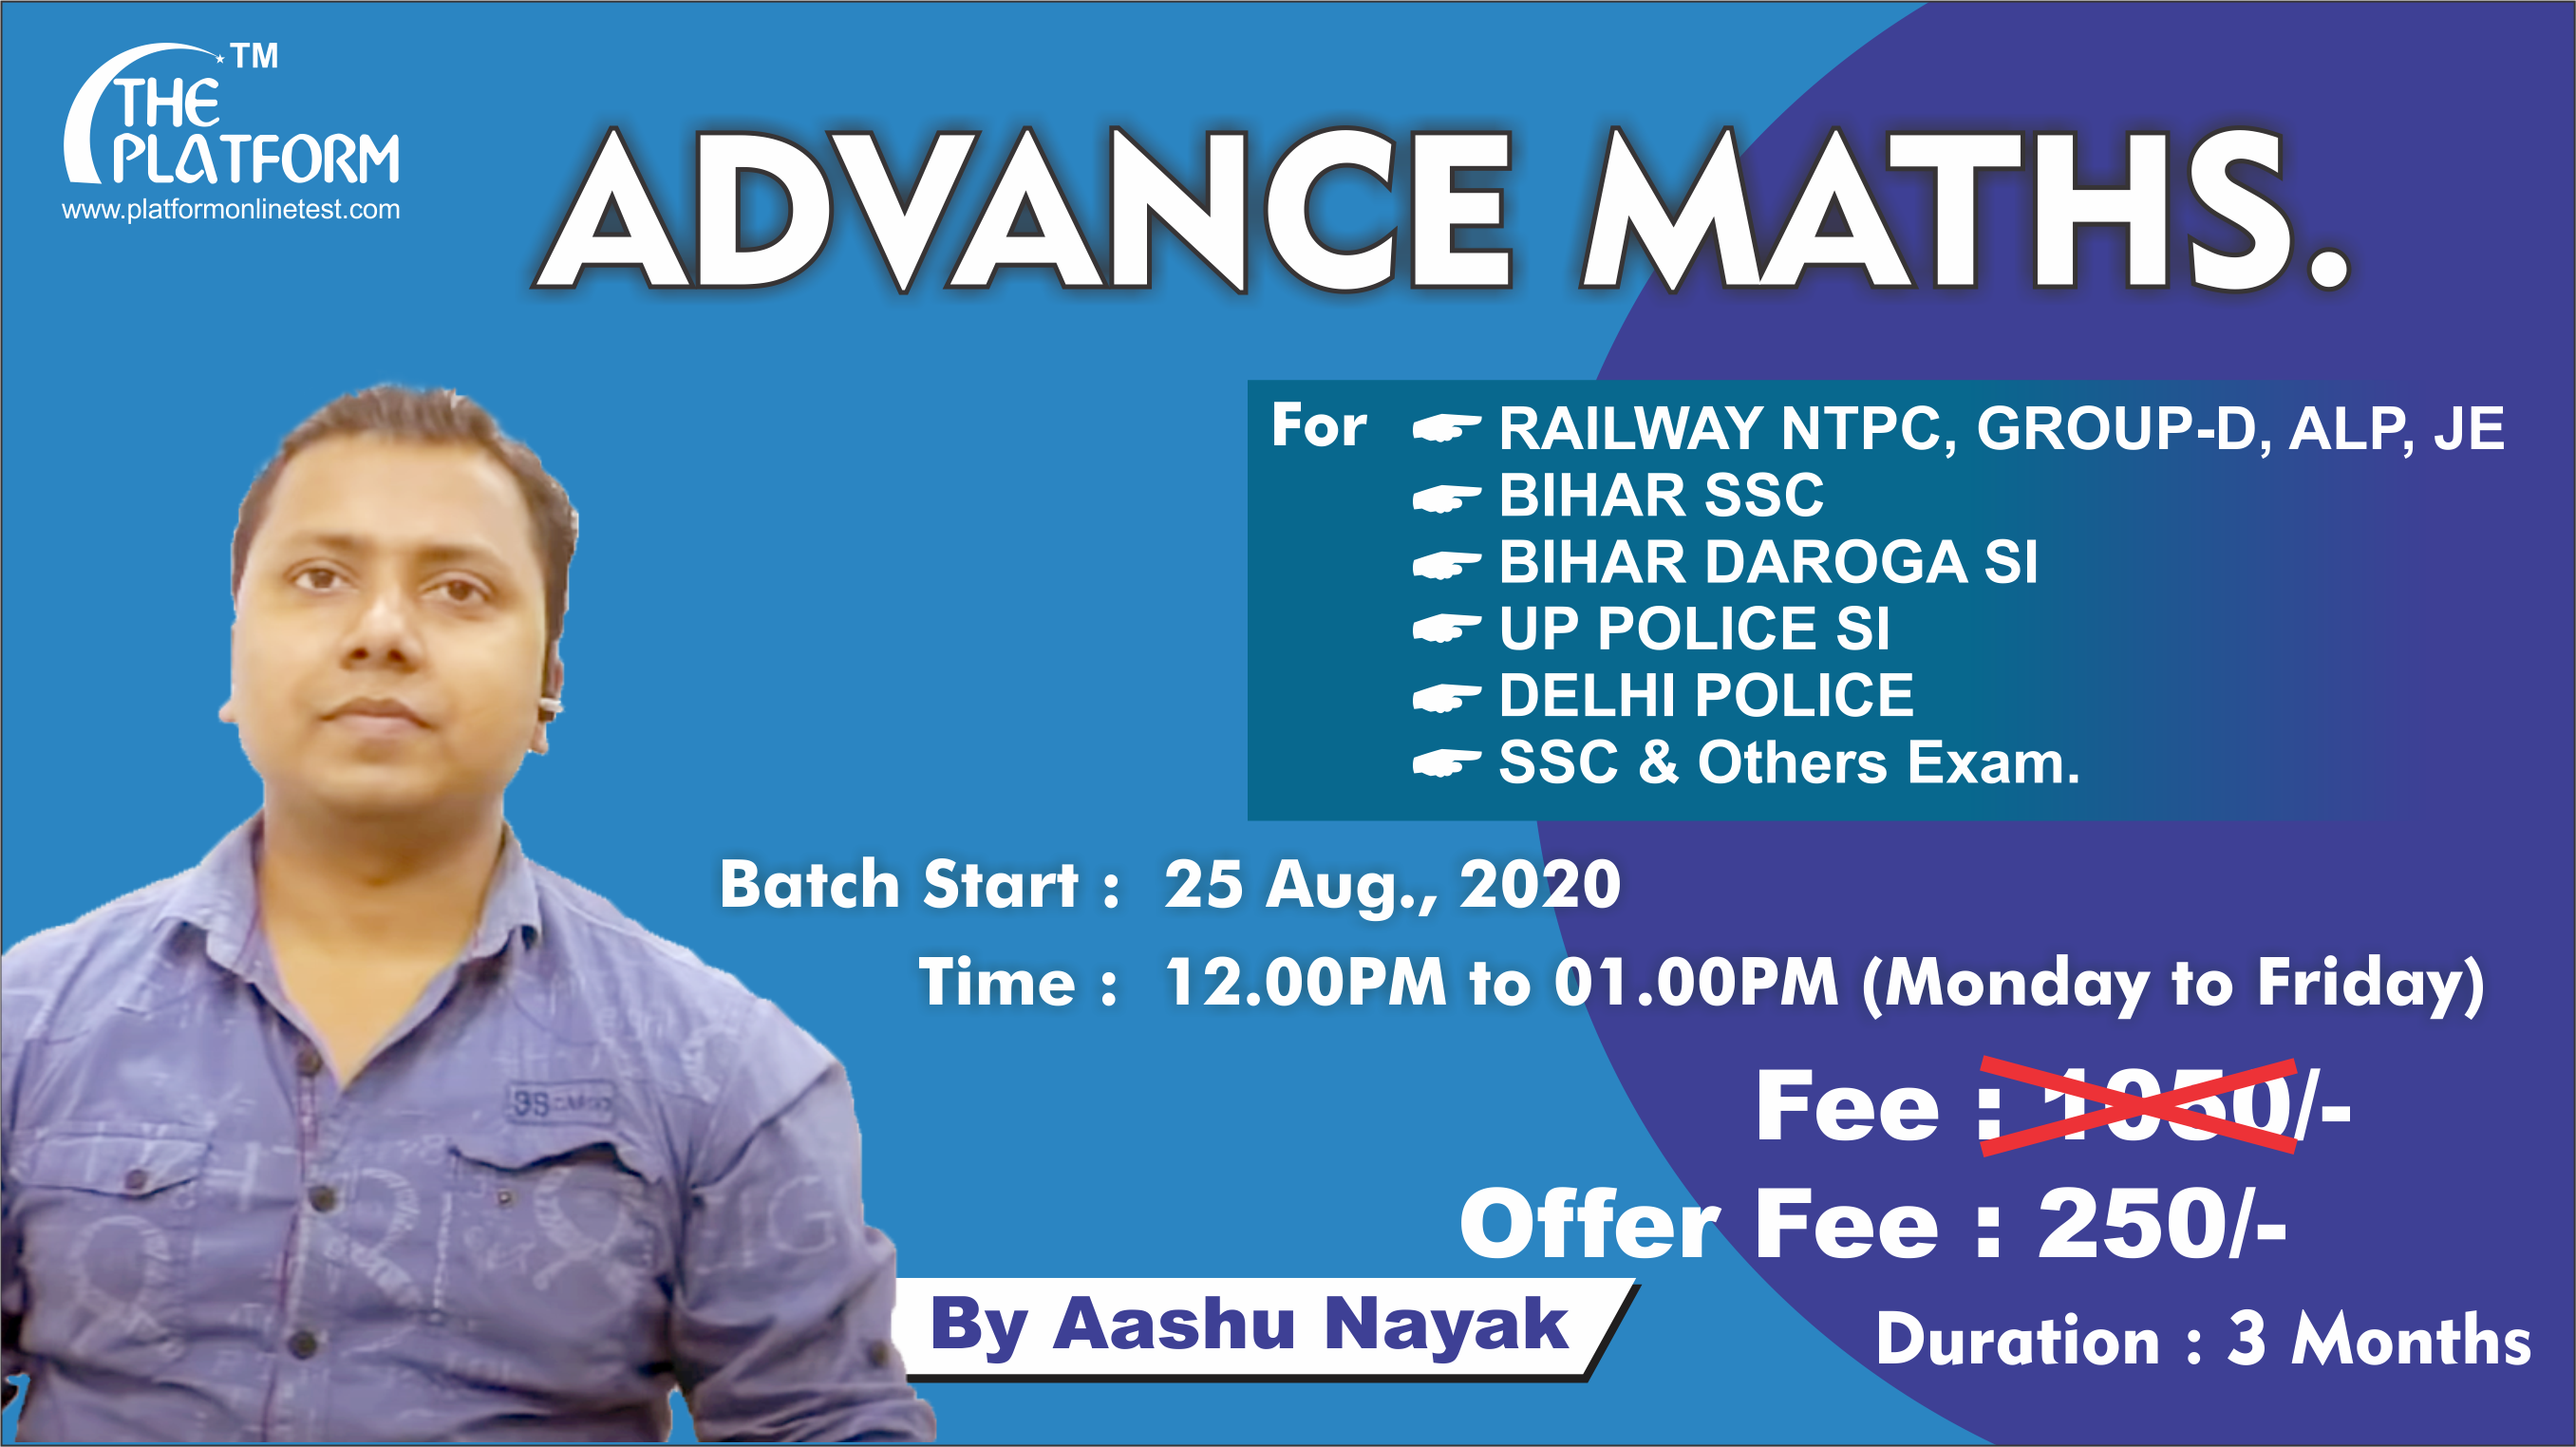 31-ADVANCE MATHS. By Aashu Nayak, Session-01